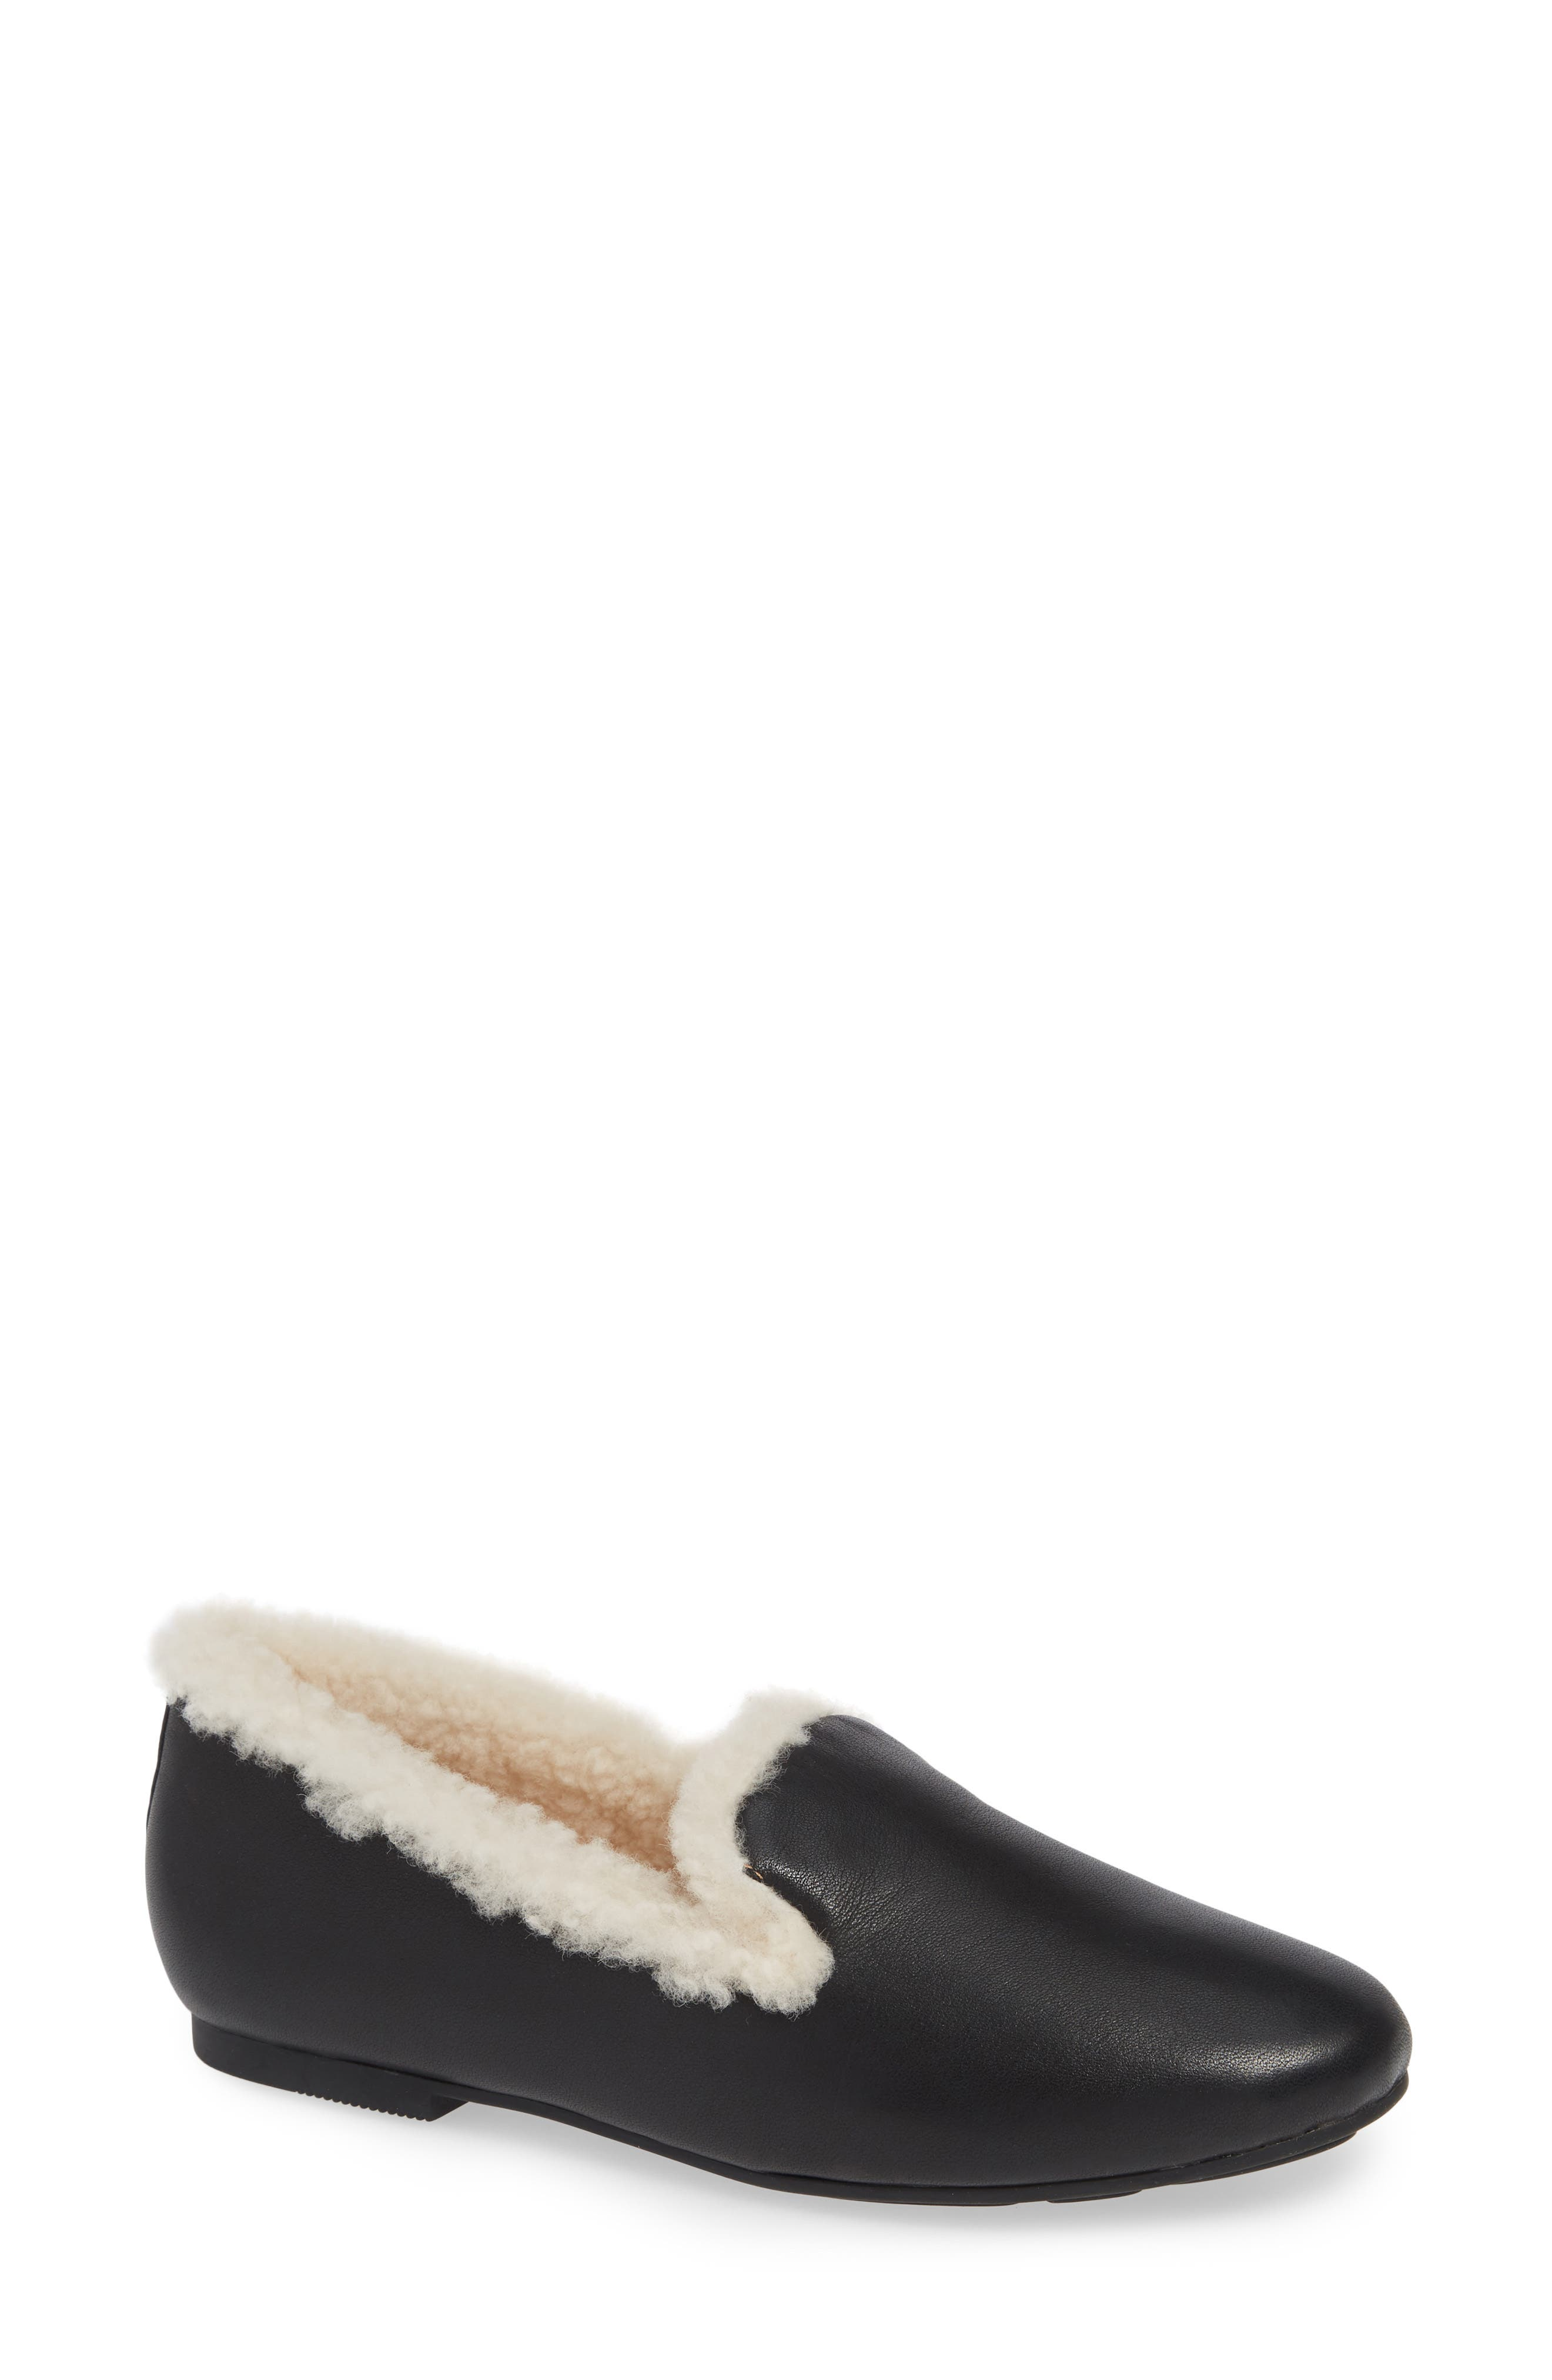 GENTLE SOULS BY KENNETH COLE, Eugene Genuine Shearling Lined Loafer, Main thumbnail 1, color, 011